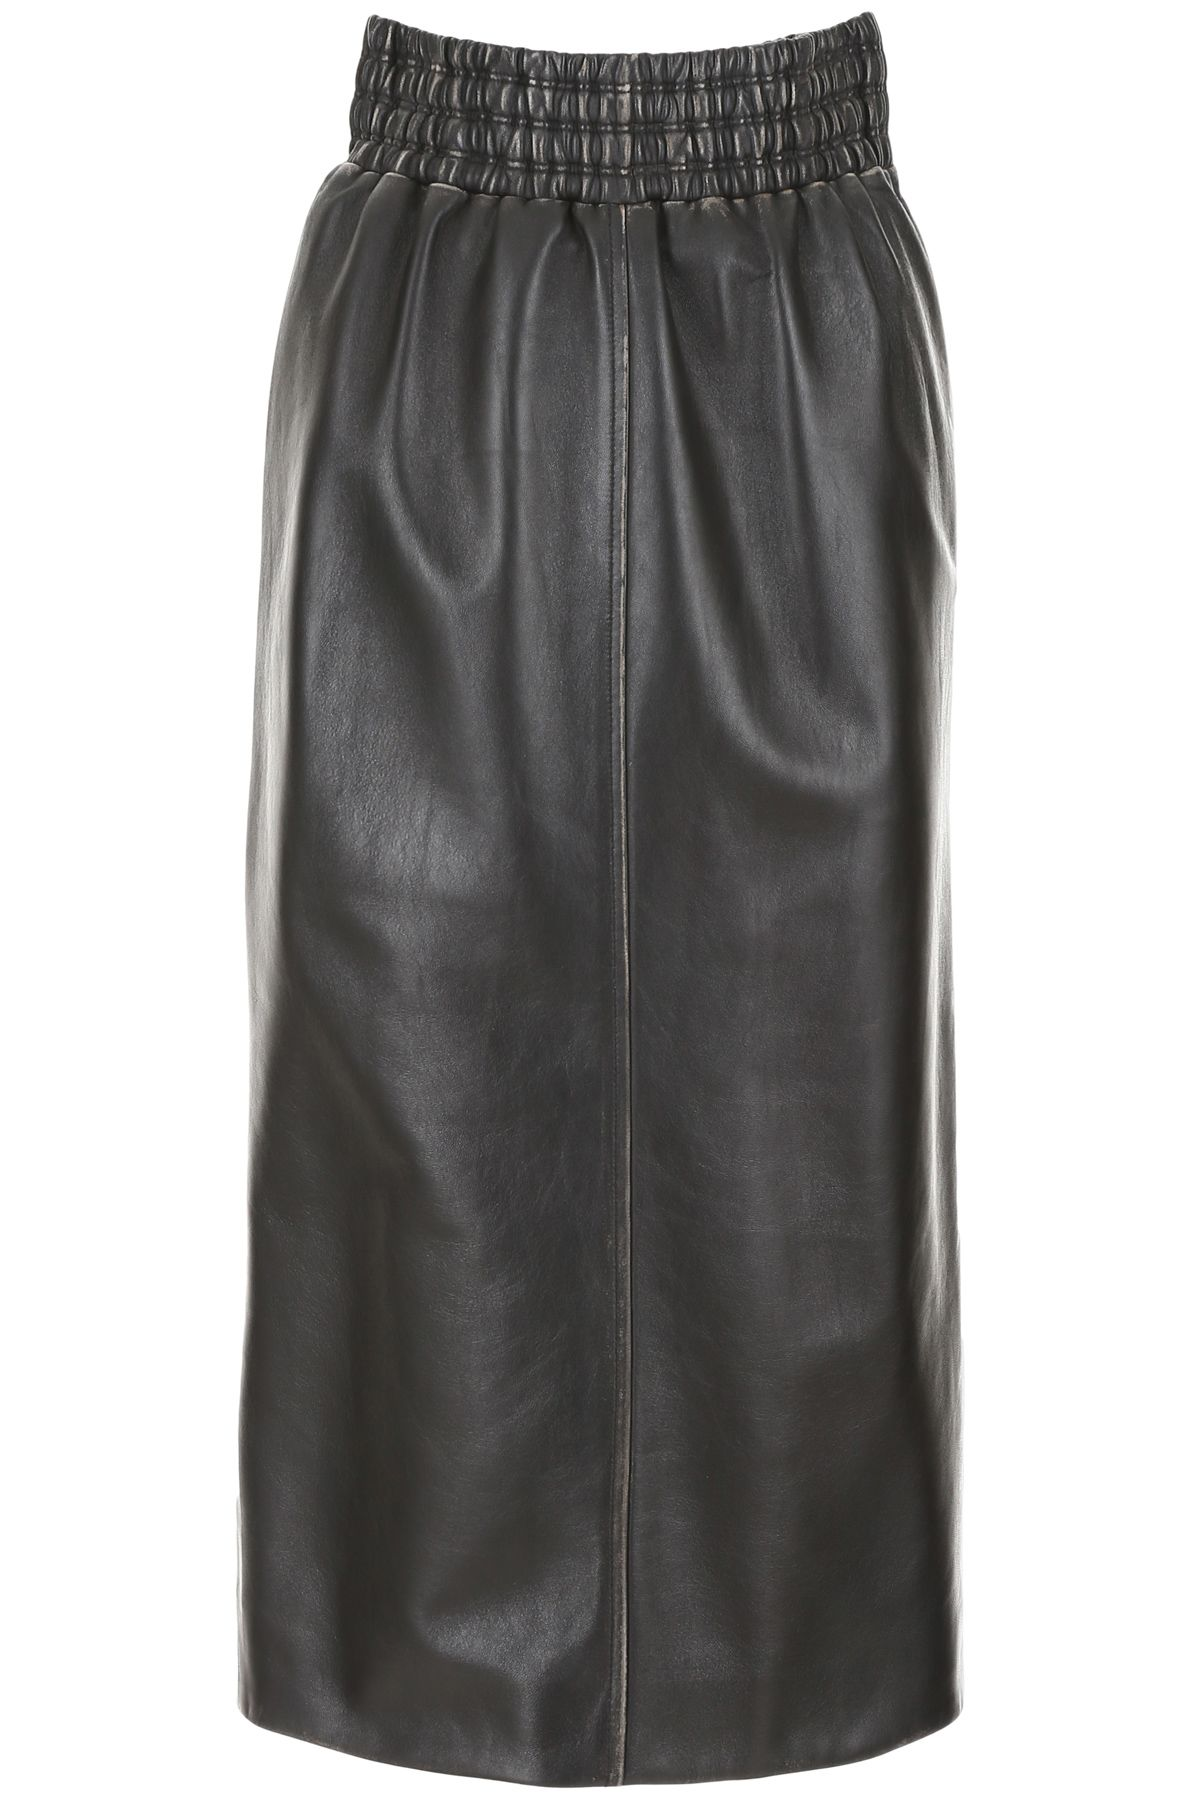 Miu Miu Leather Skirt